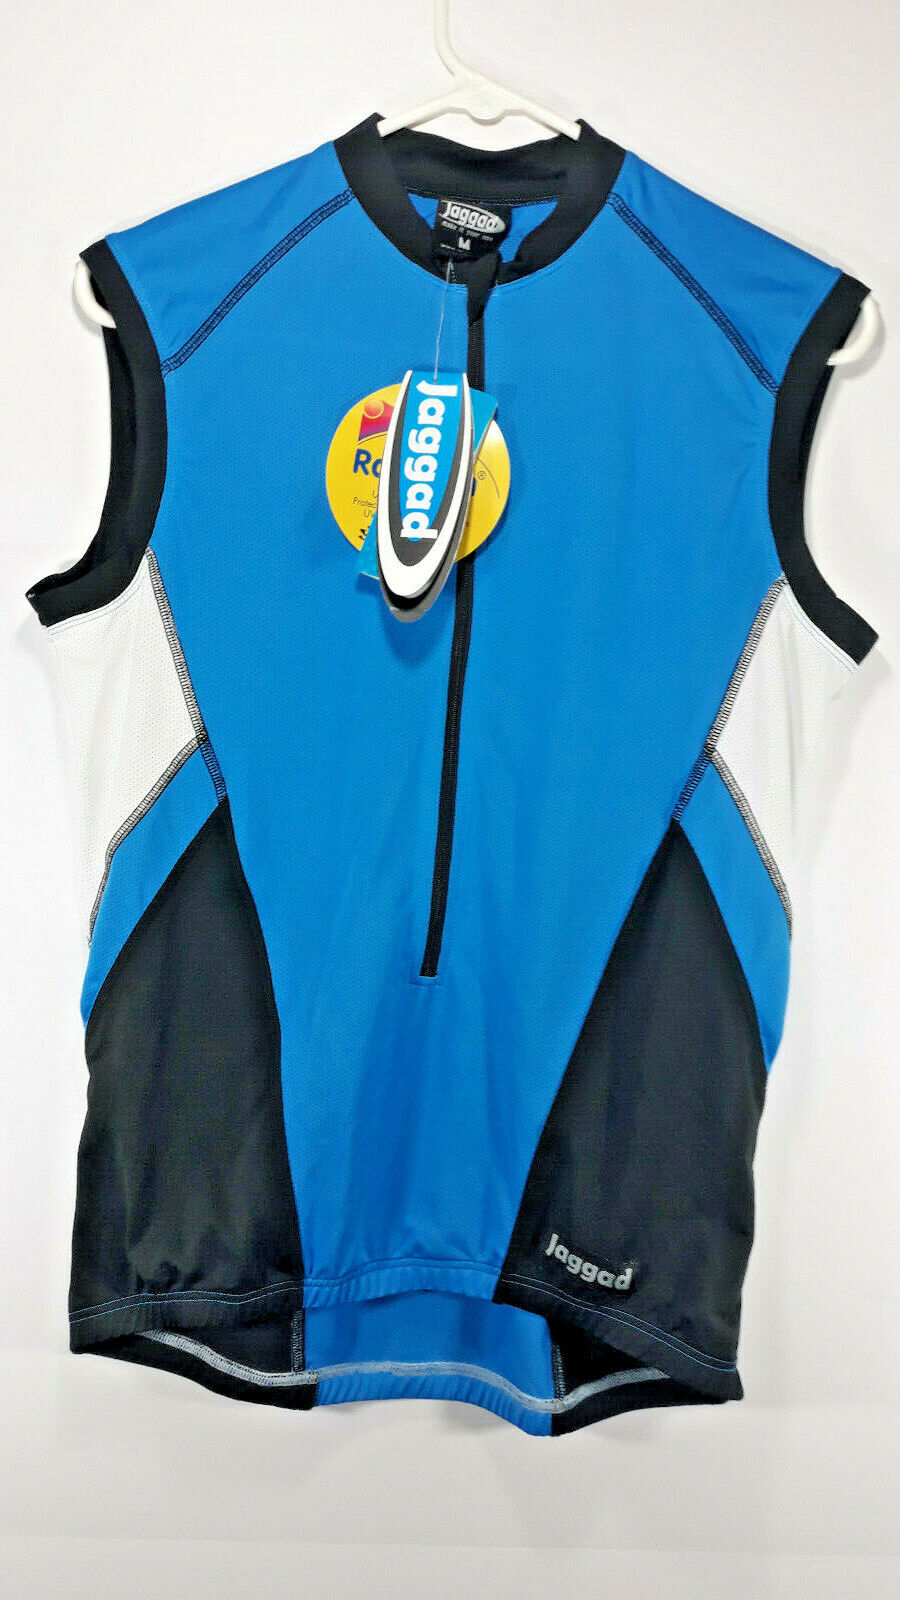 NWT Jaggad Womens bluee Medium Cycling Jersey Bicycle Length 24-1 2 Width 20